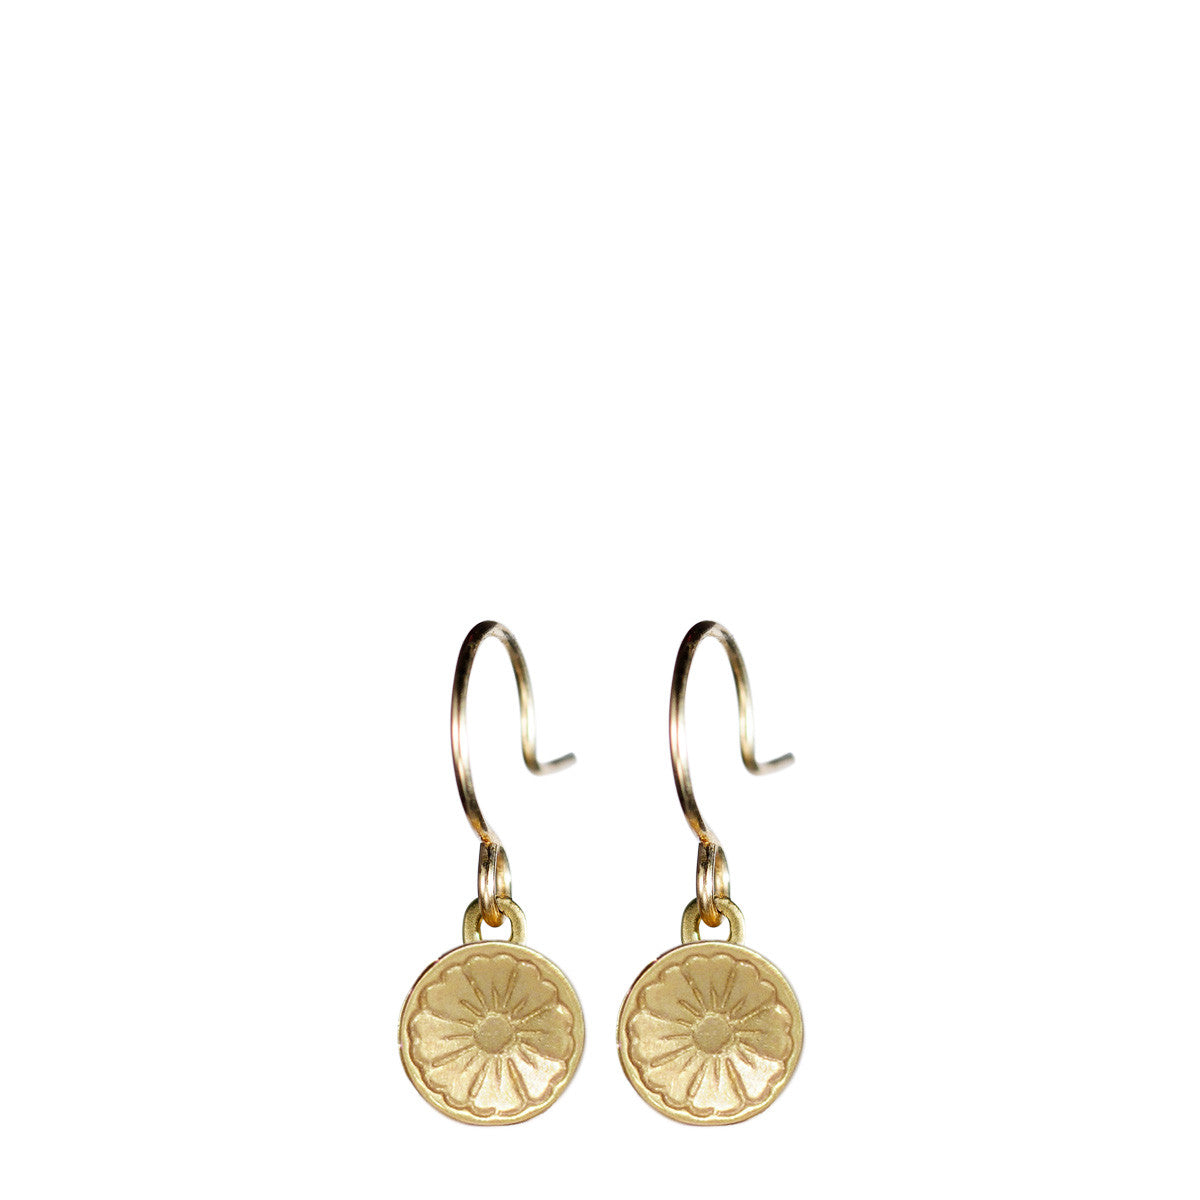 10K Gold Engraved Flower Earring